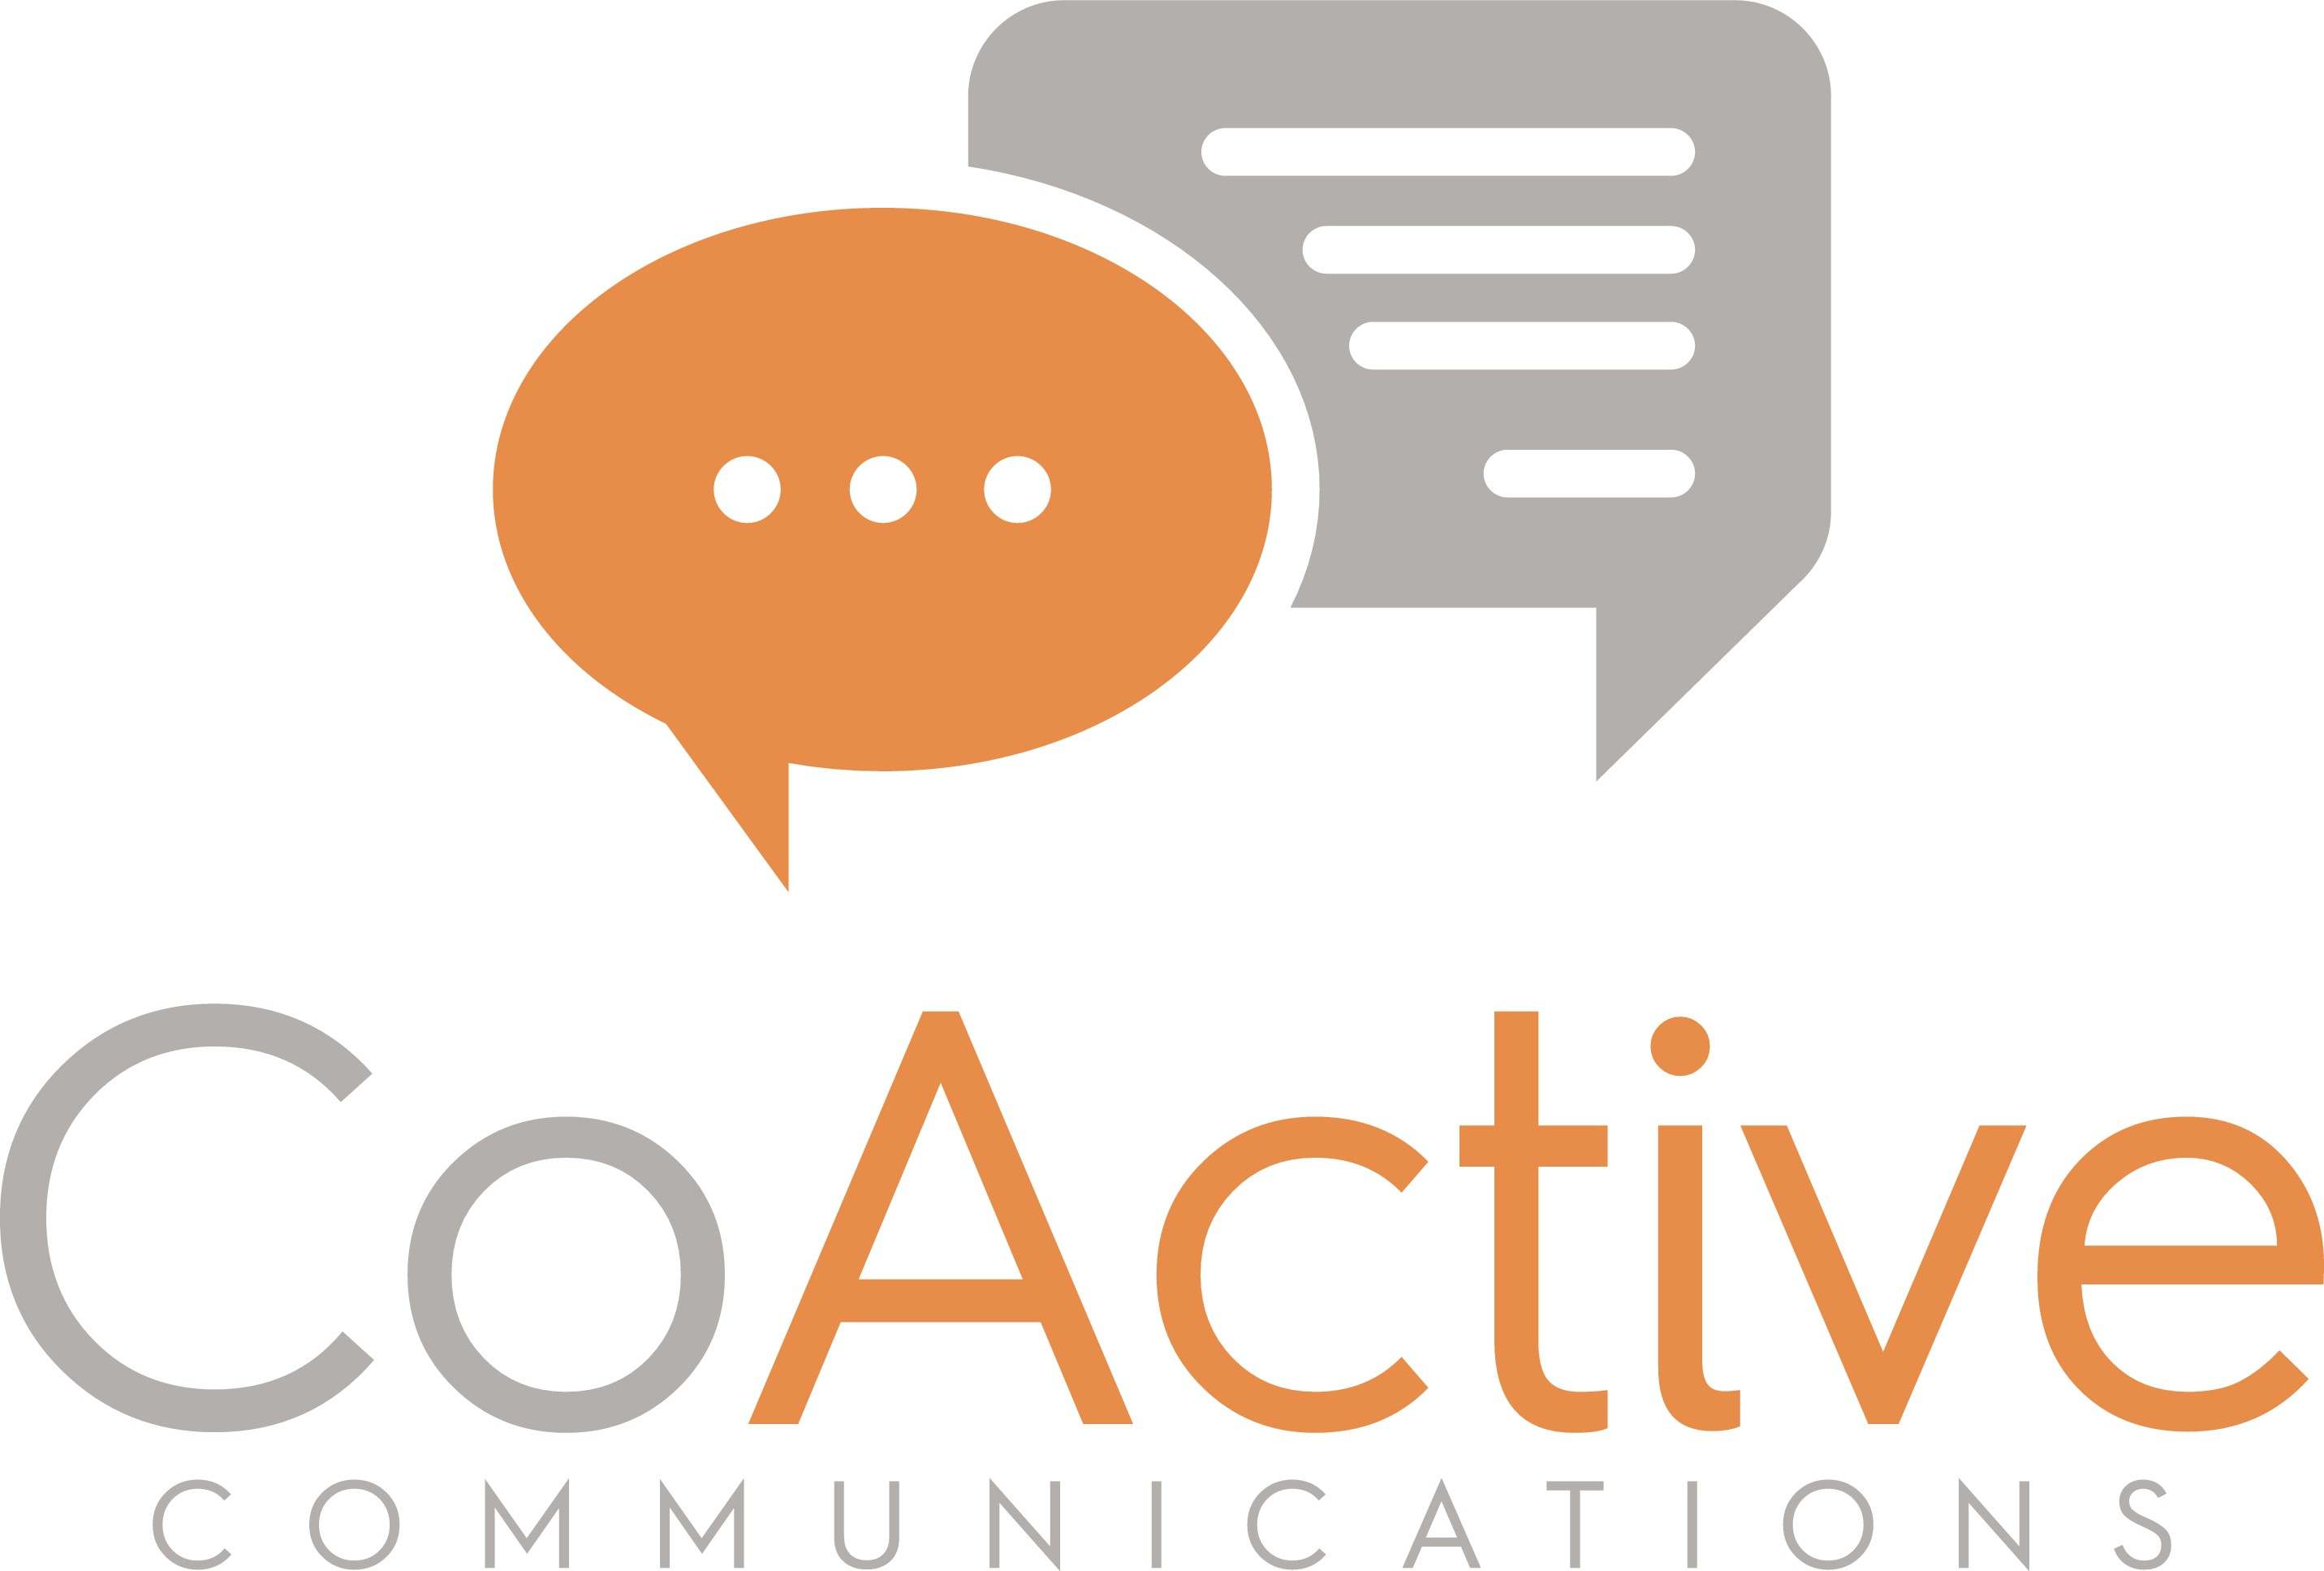 CoActive needs your help to tell its story